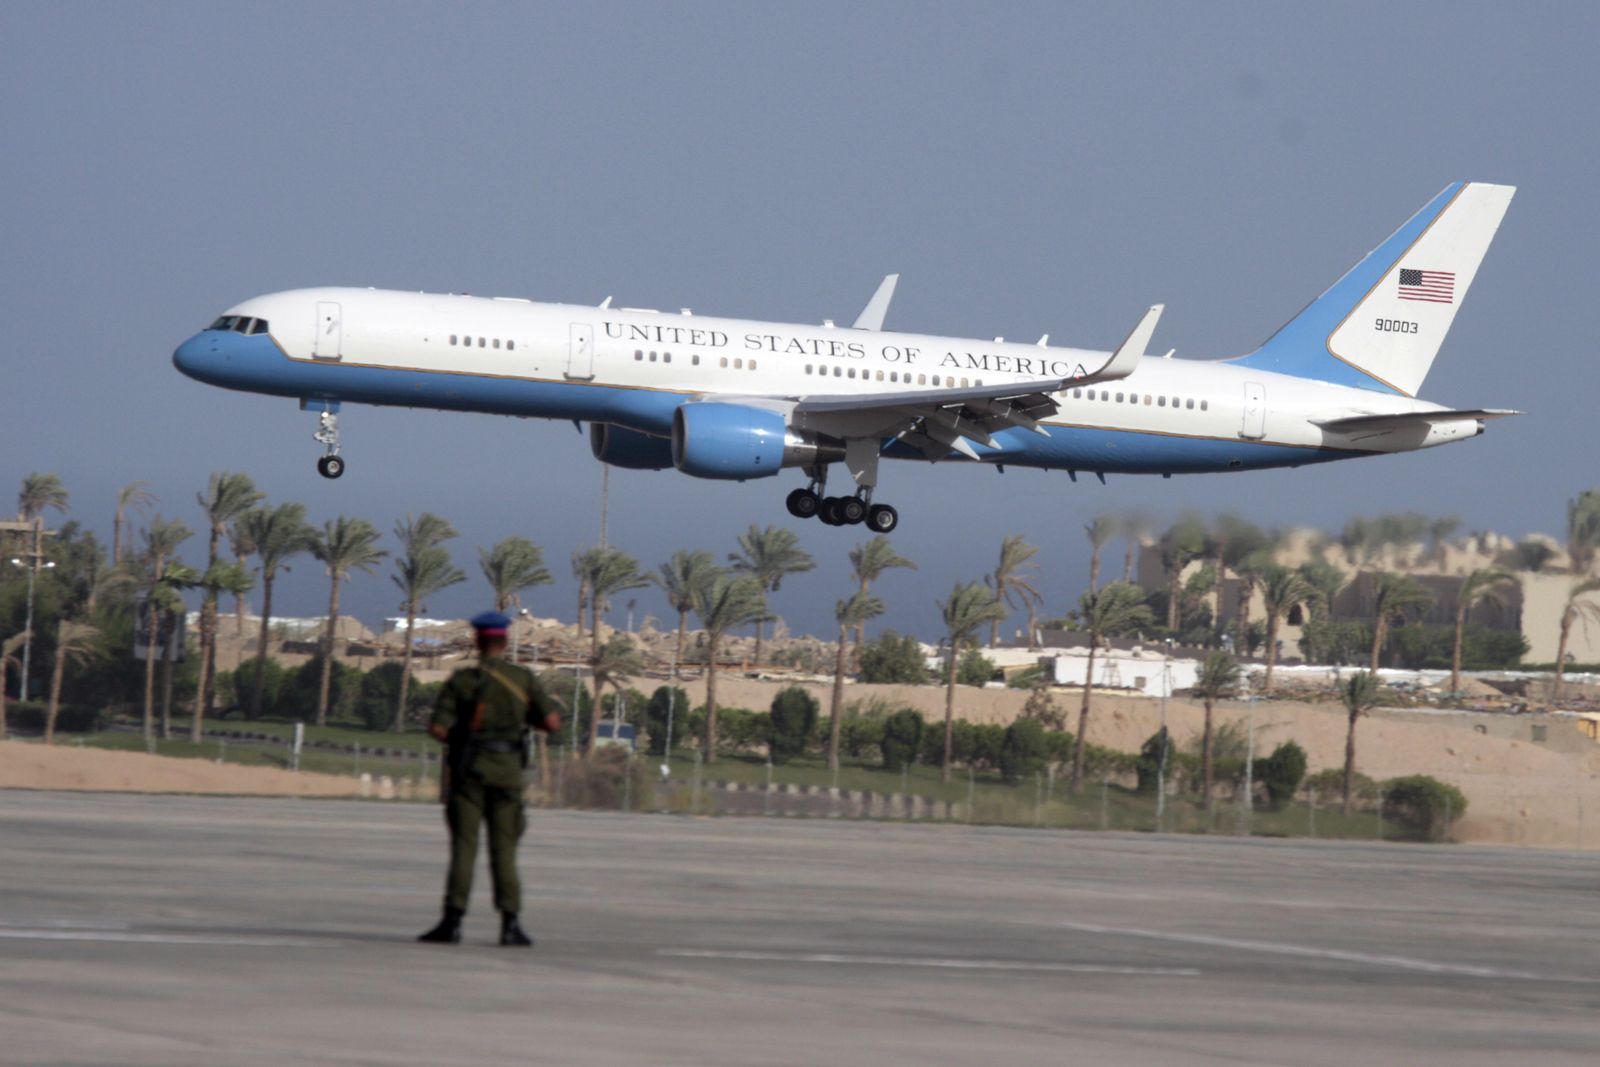 USA / Air Force Two